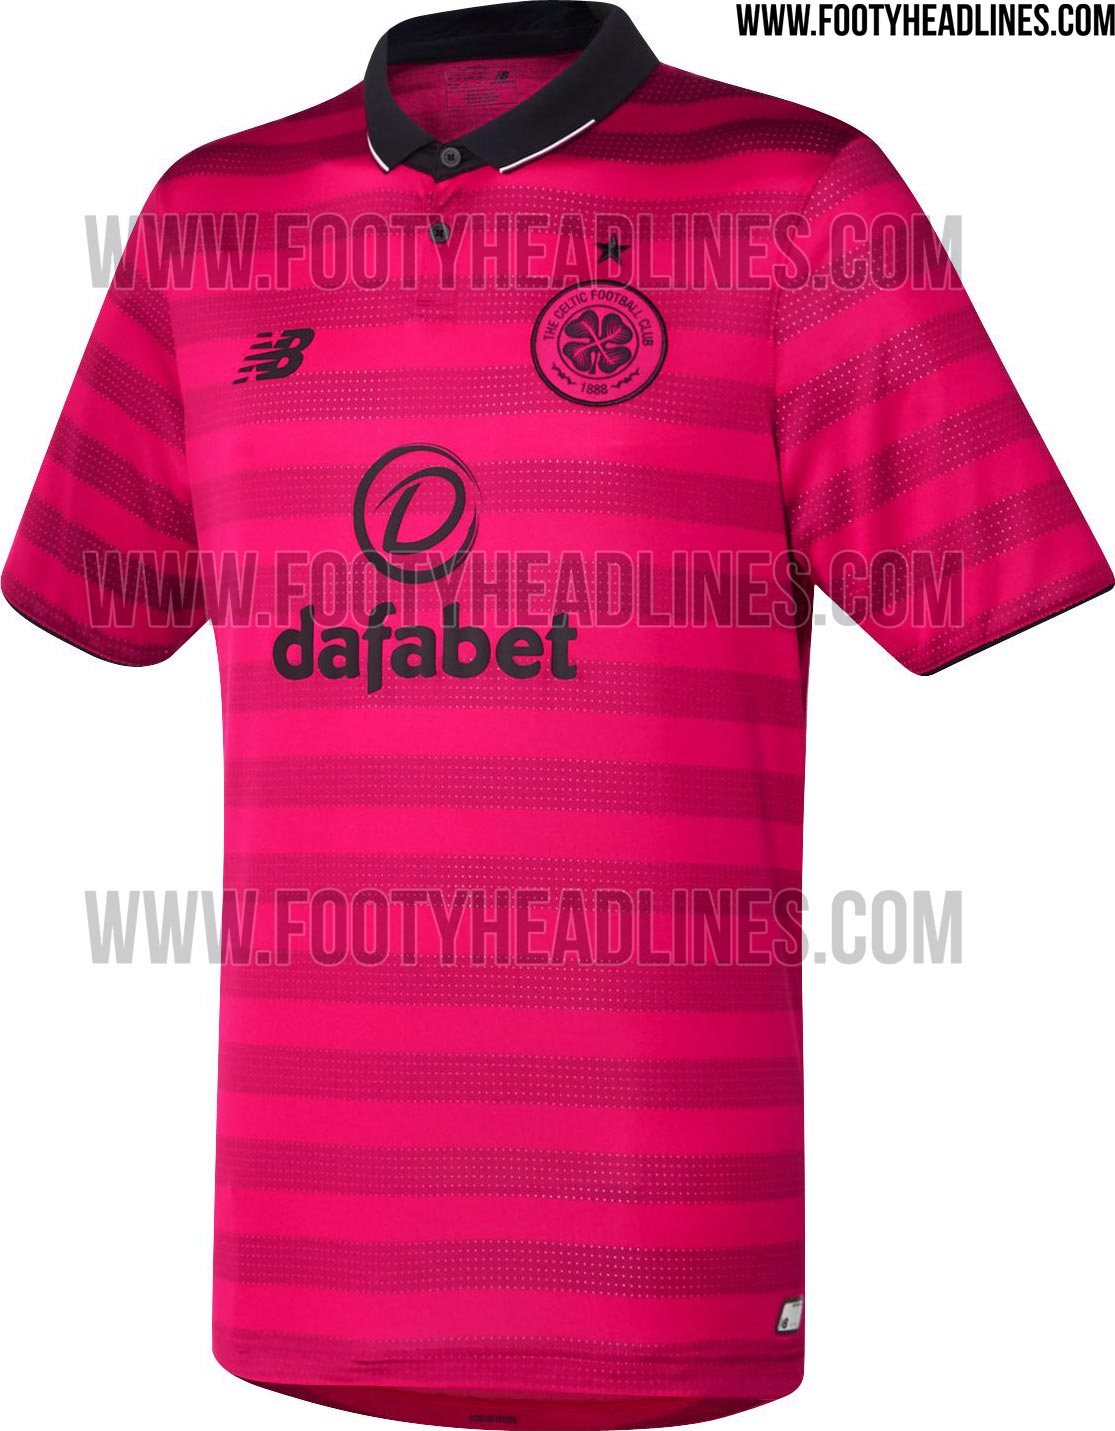 celtic-16-17-third-kit-2.jpg